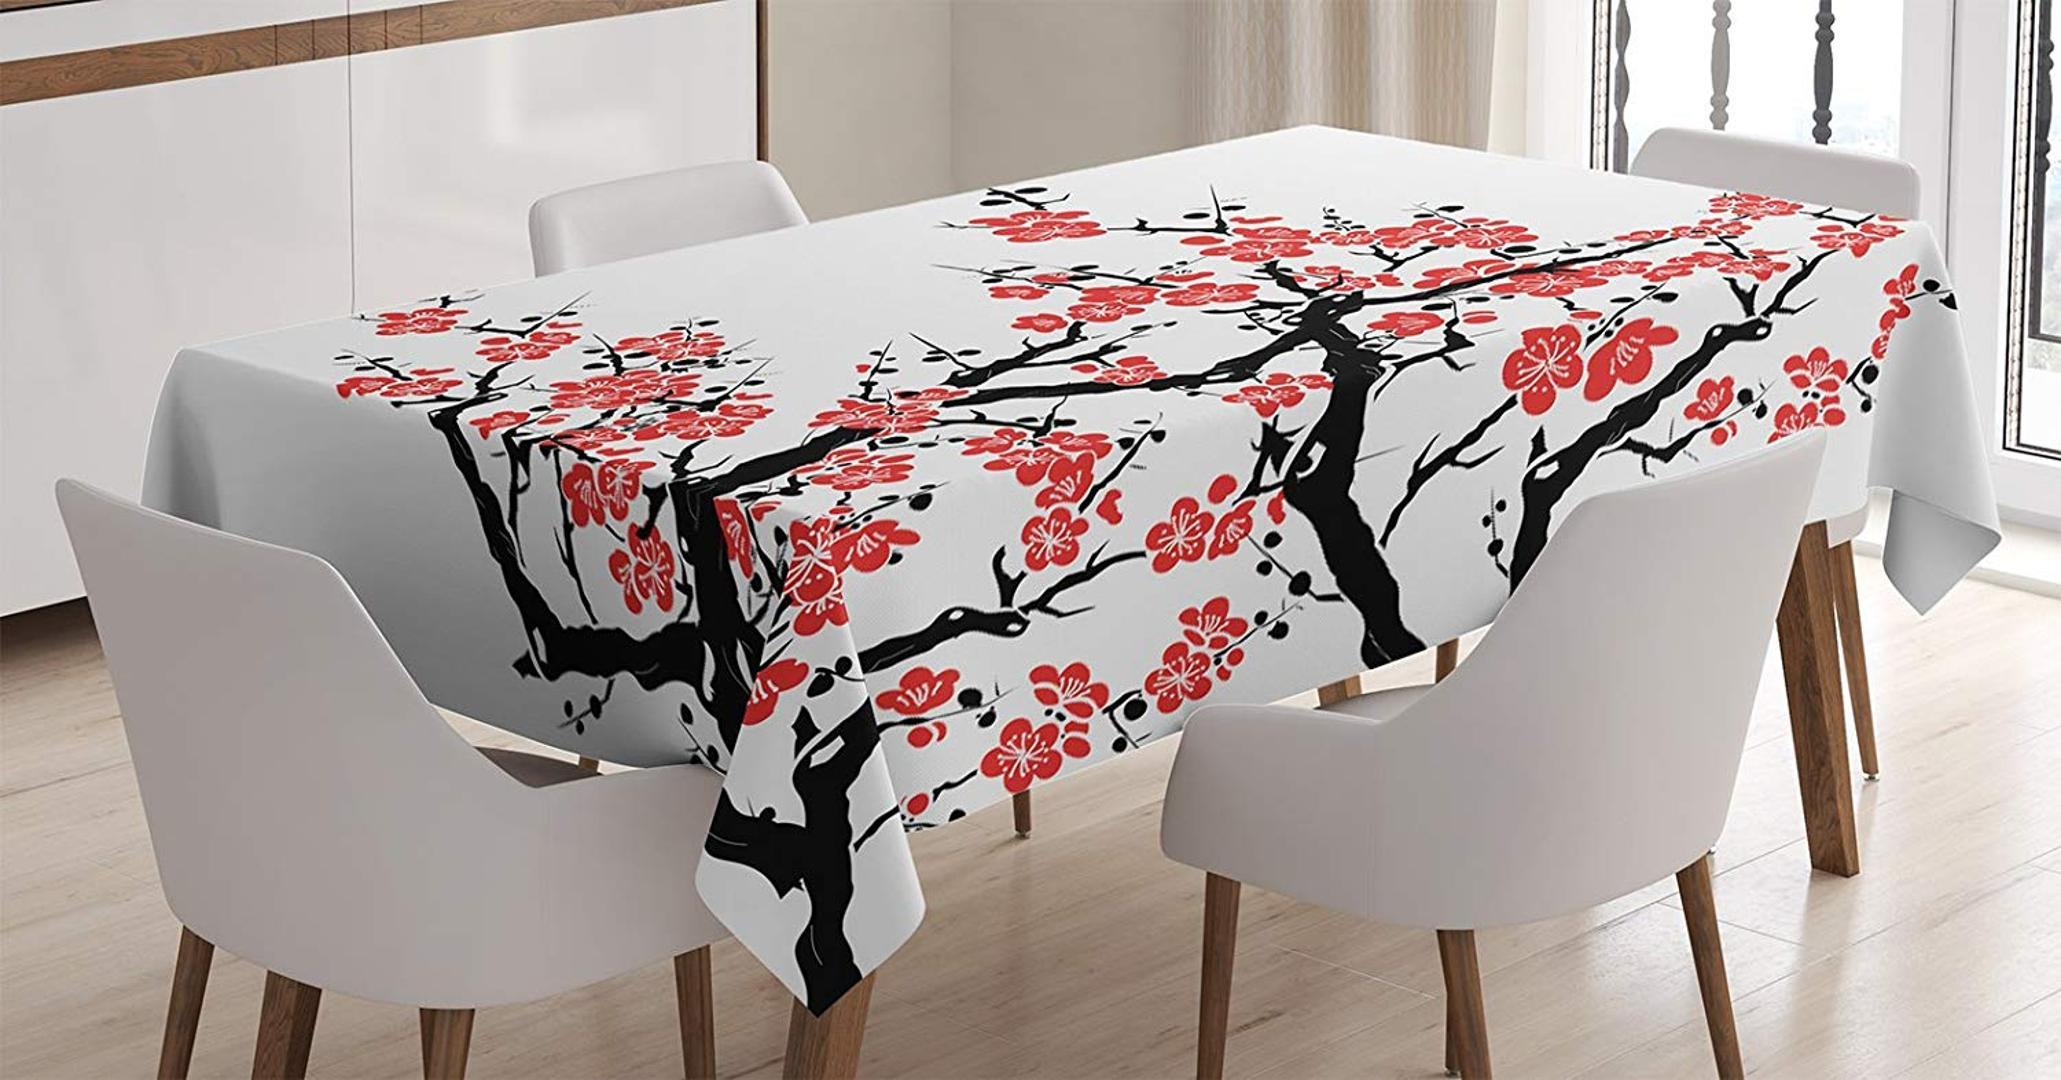 Asian Decor Tablecloth Plum Tree Blossoms Japanese Spring Traditional Festival Celebration Dining Room Kitchen Table Cover